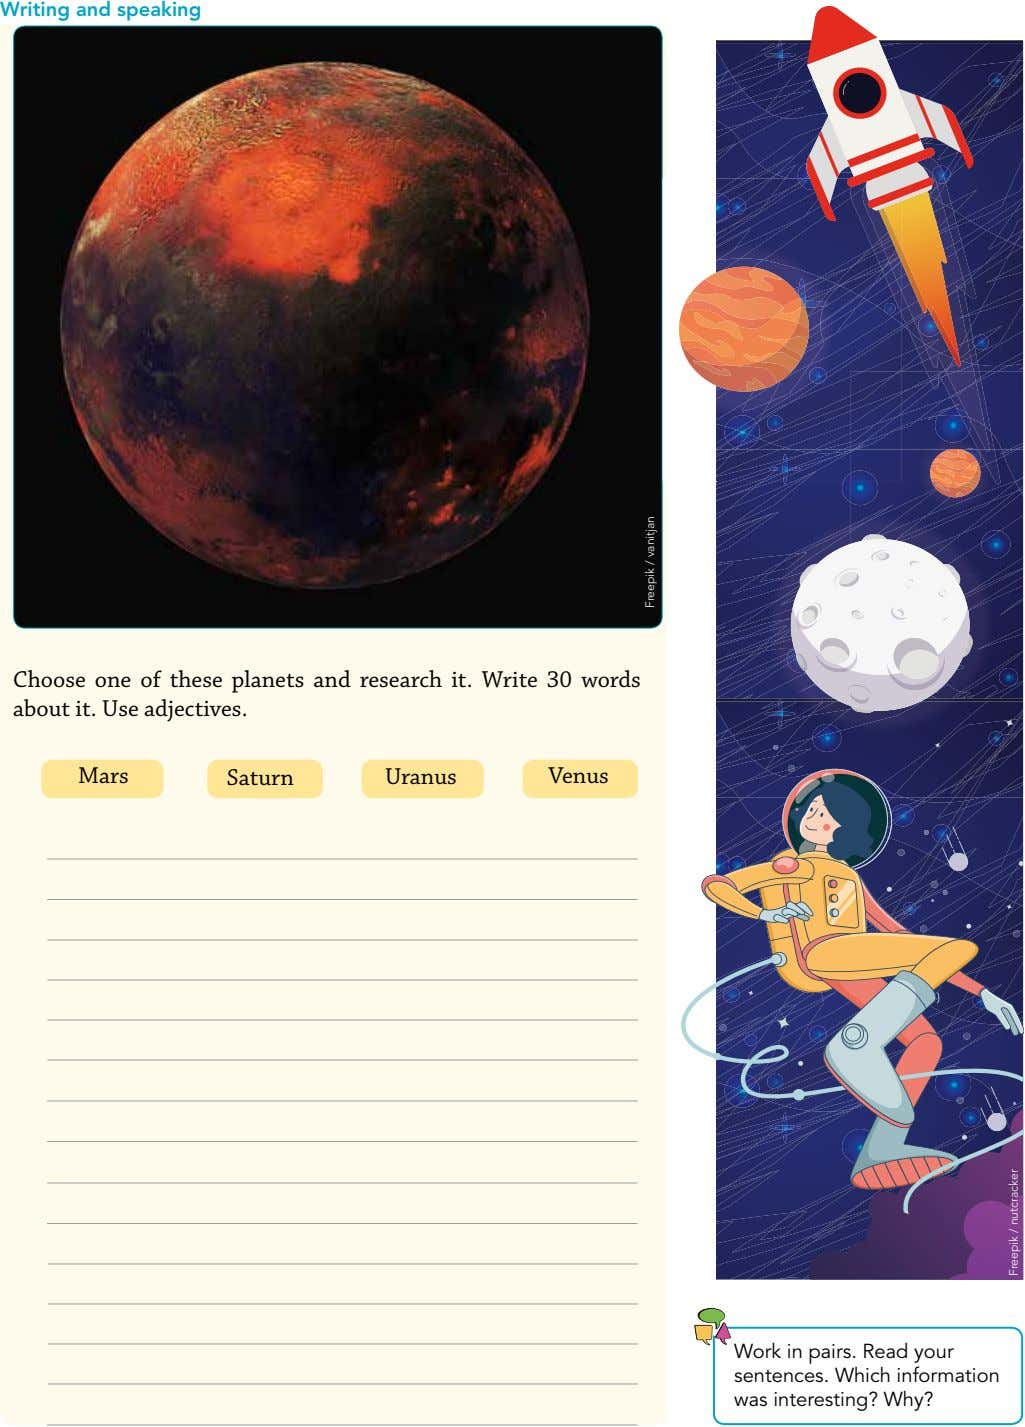 Writing and speaking Choose one of these planets and research it. Write 30 words about